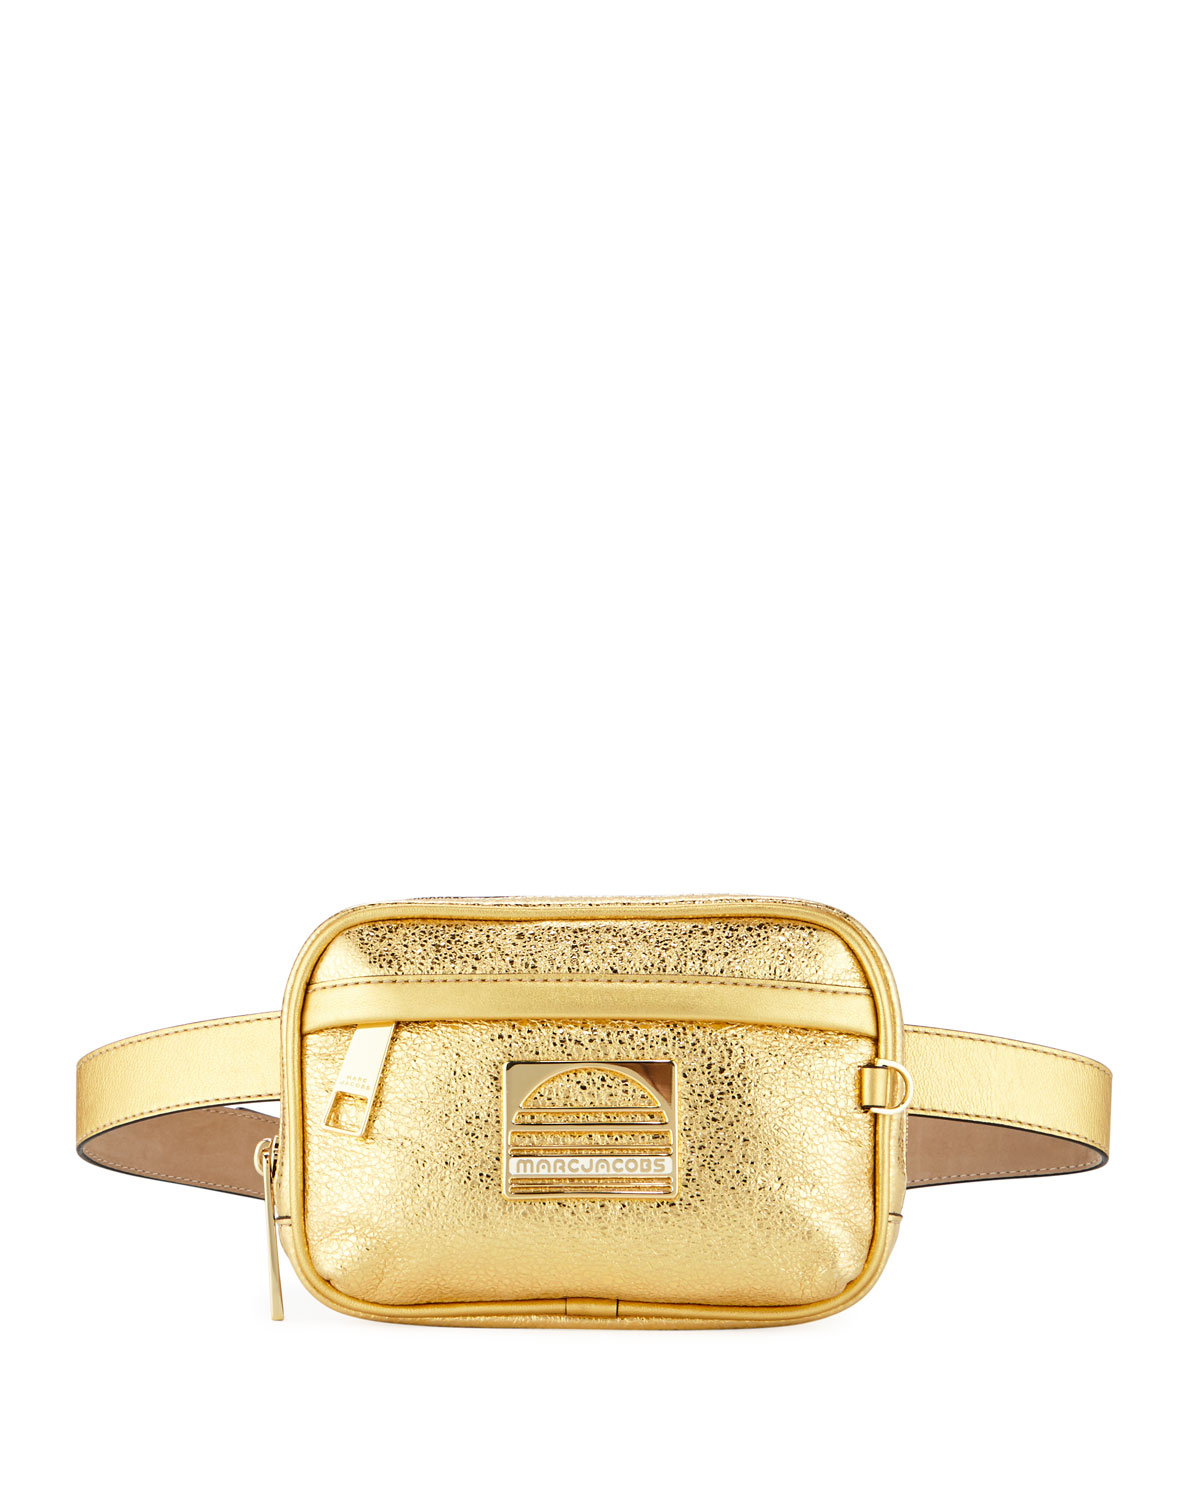 SPORT METALLIC LEATHER BELT BAG/FANNY PACK from Neiman Marcus